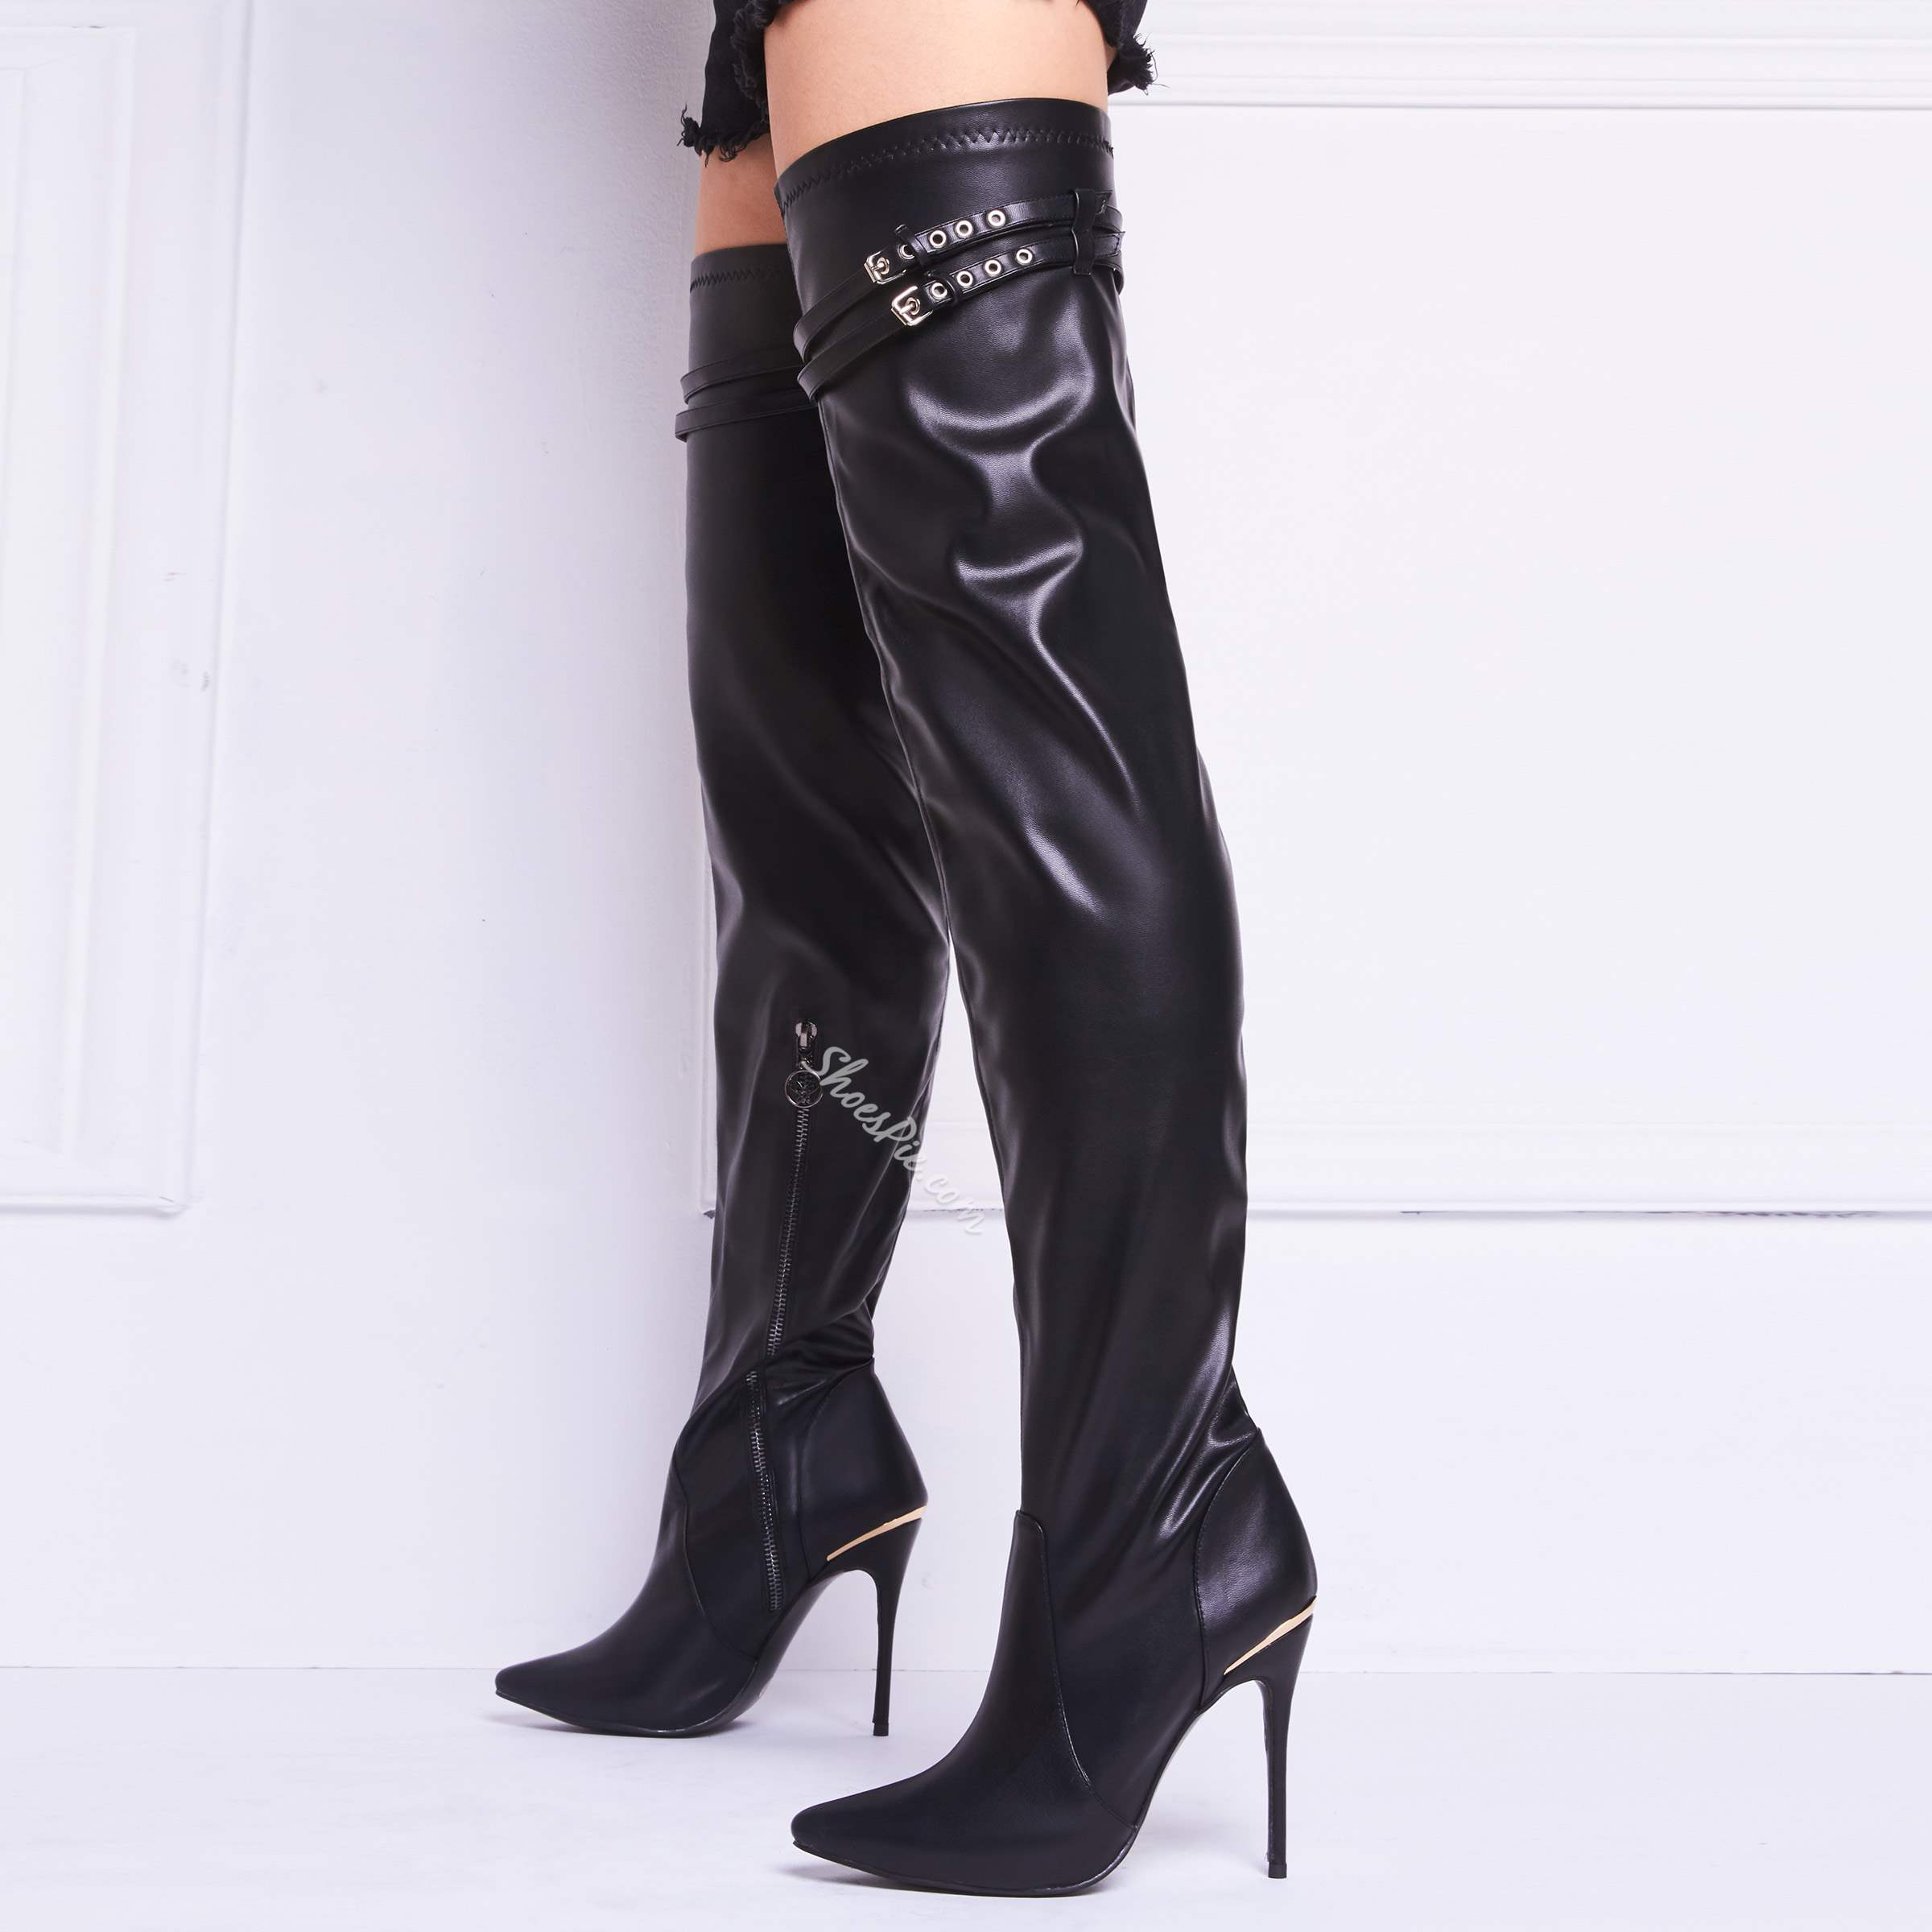 0d14a922b09 Shoespie Metal Decoration Zipper Over Knee High Boots